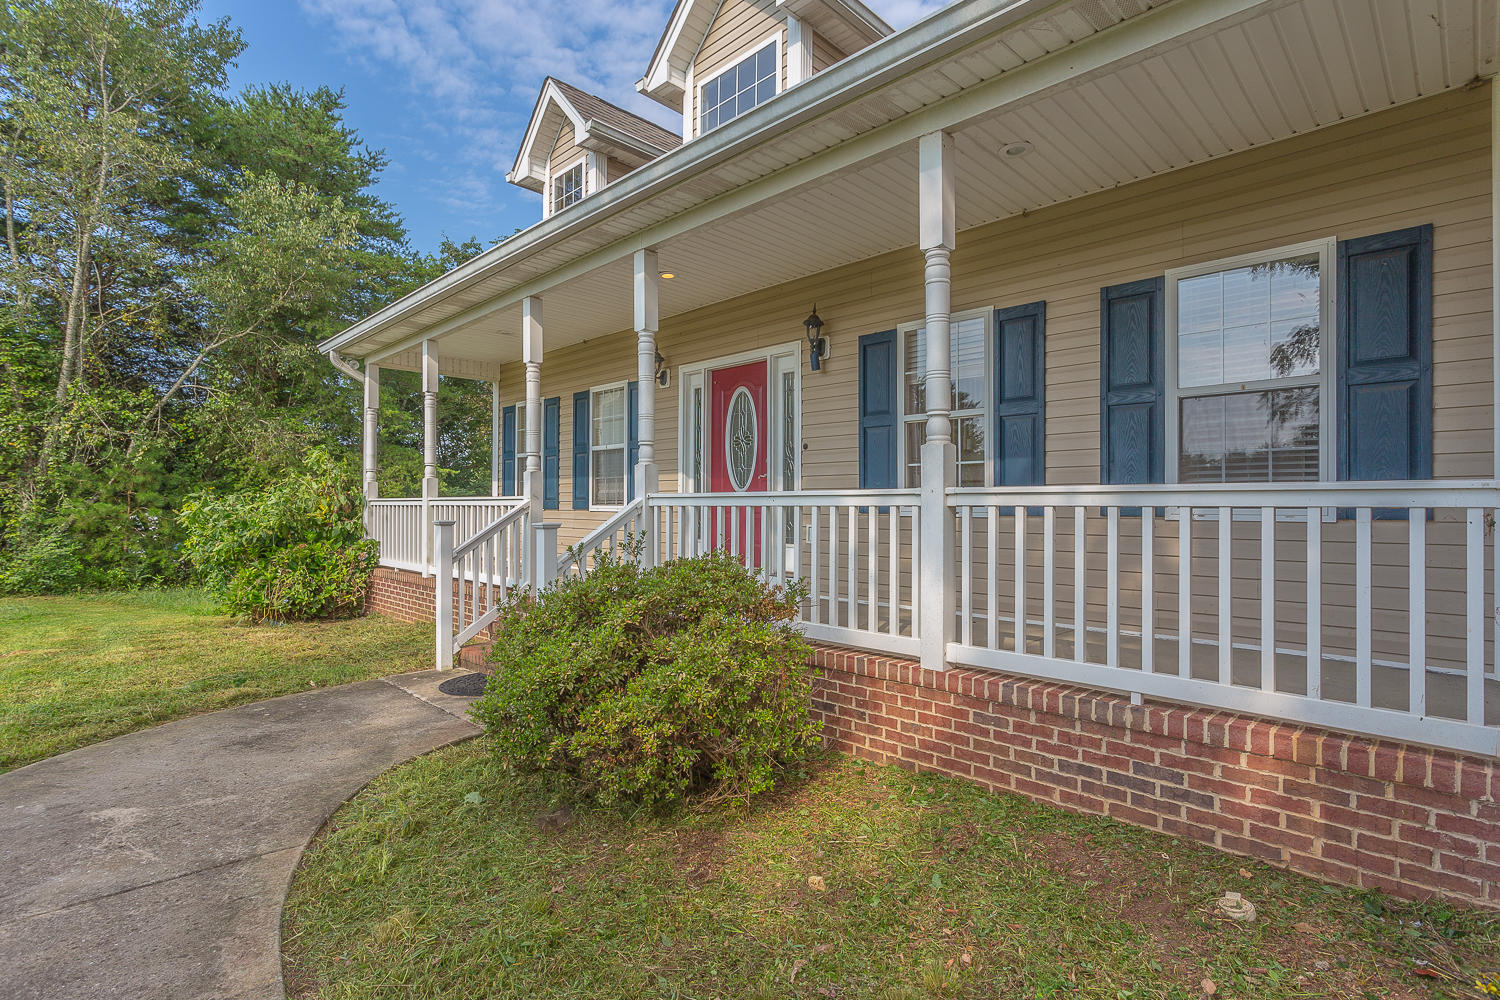 15704 Iles Rd, Sale Creek, TN 37373